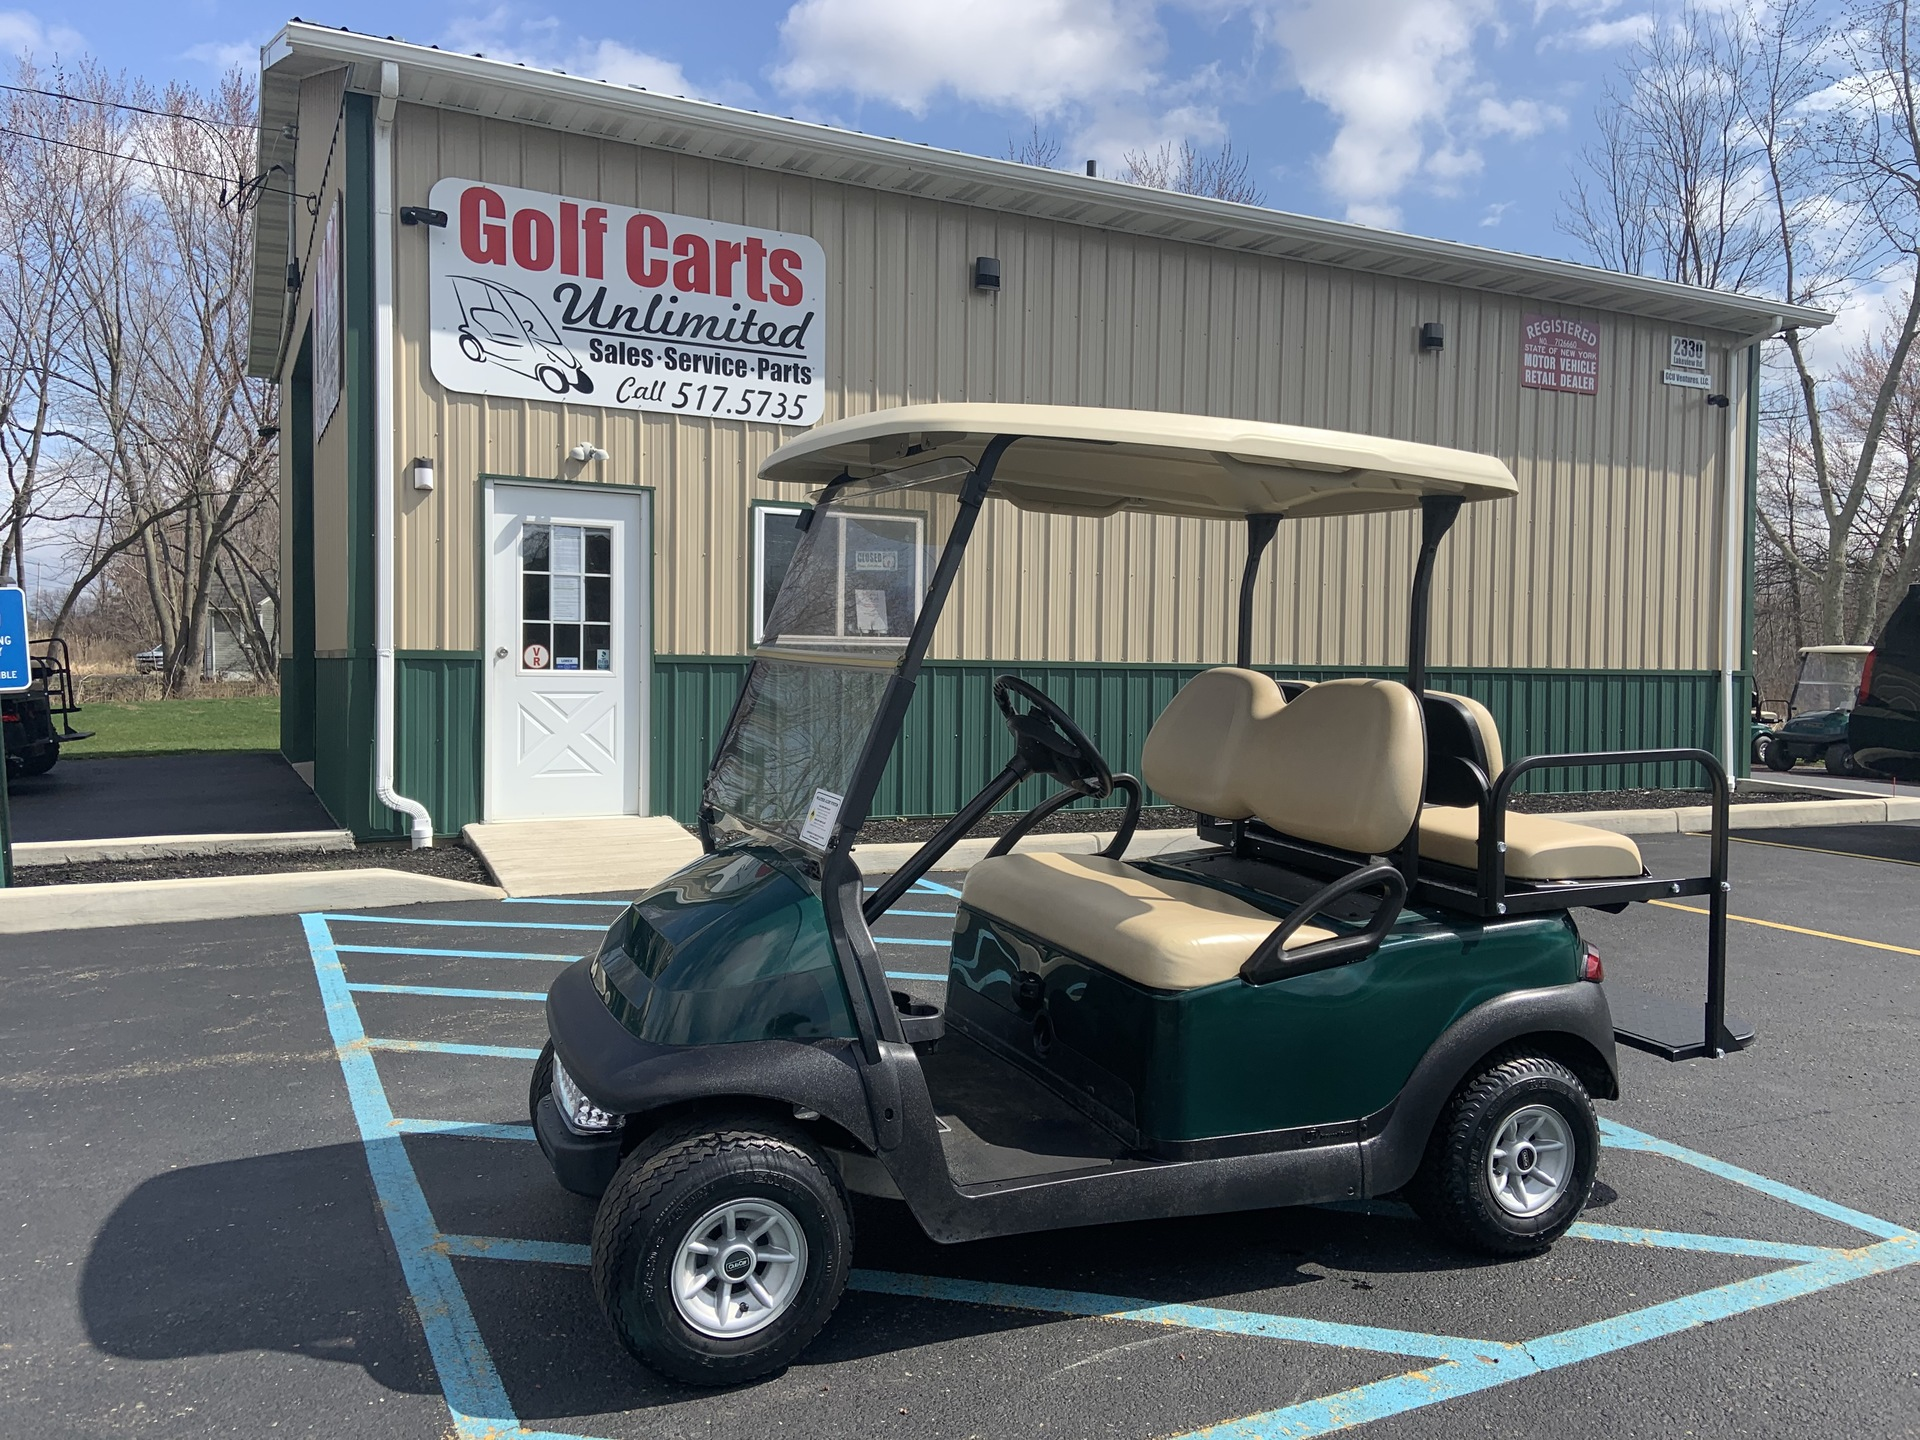 2012 Club Car Precedent green Electric cart